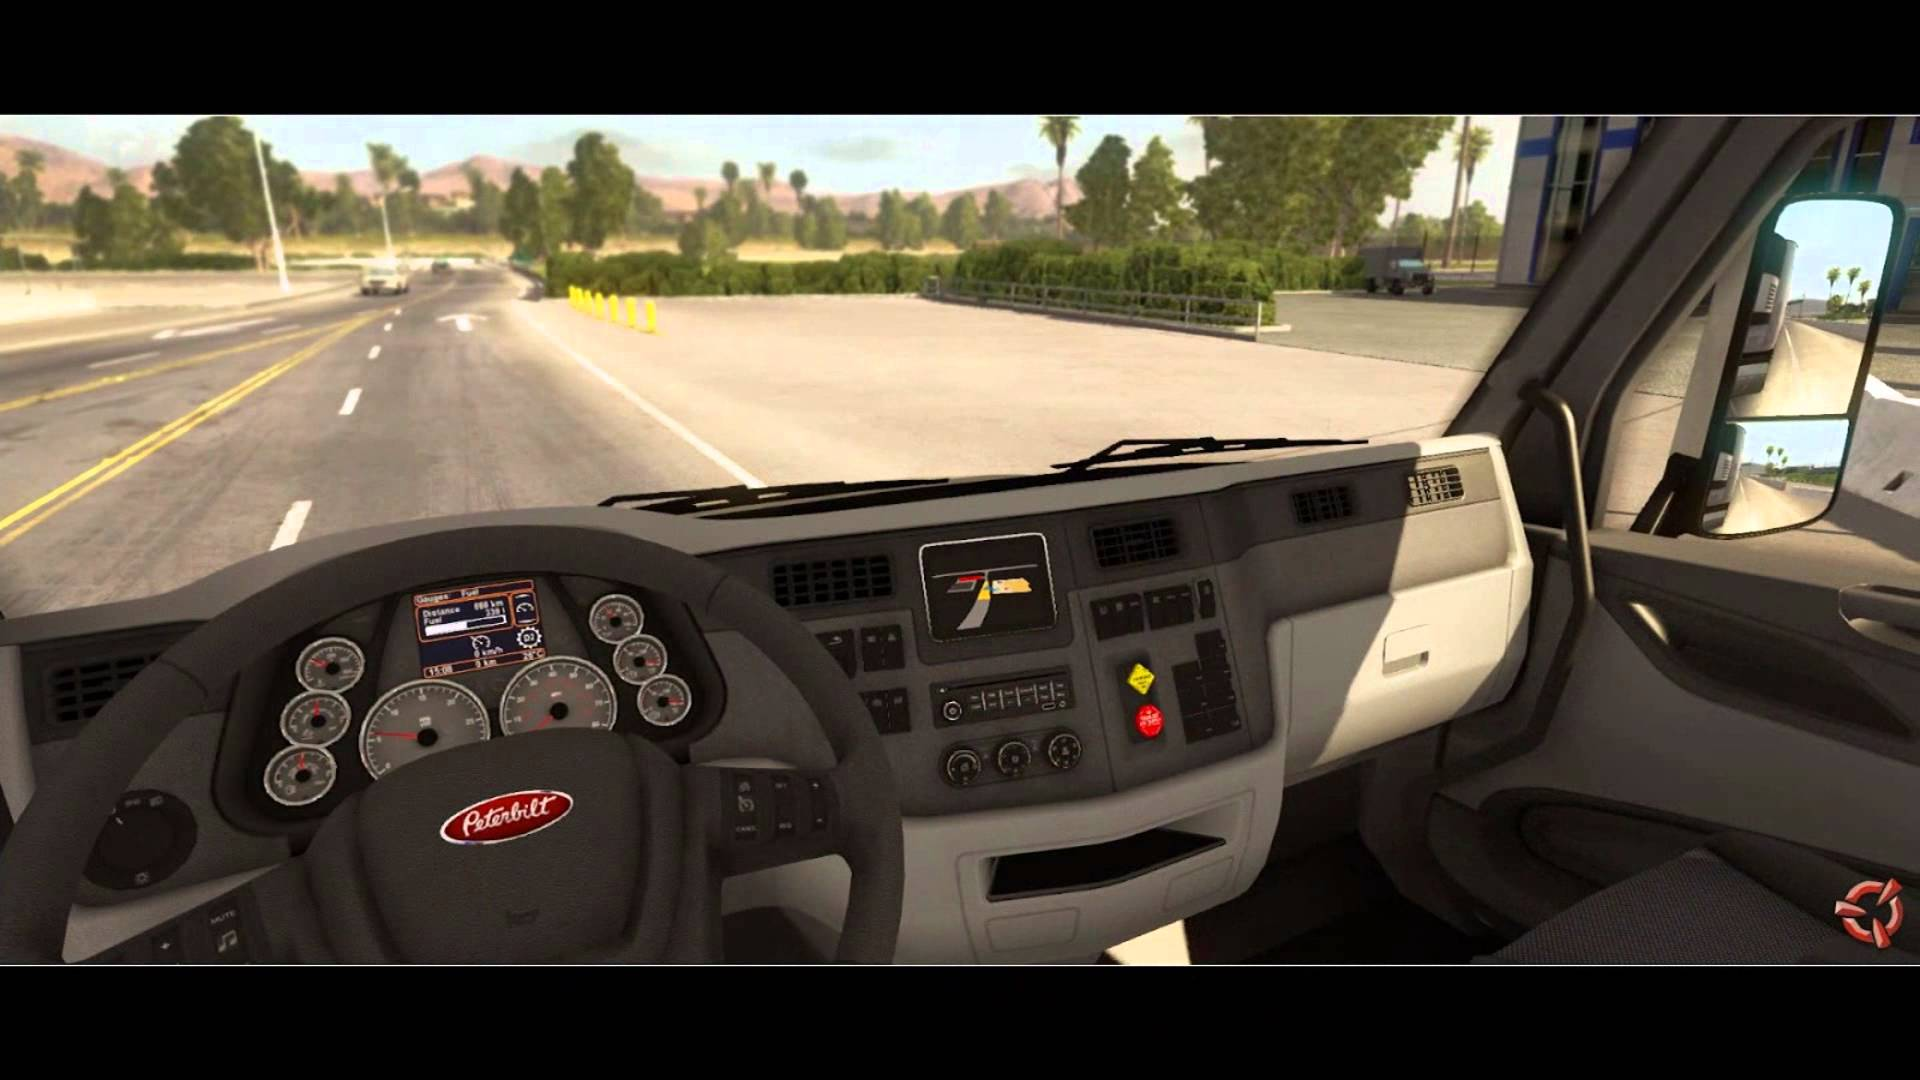 ABOUT US - American Truck Simulator mods, ATS mods